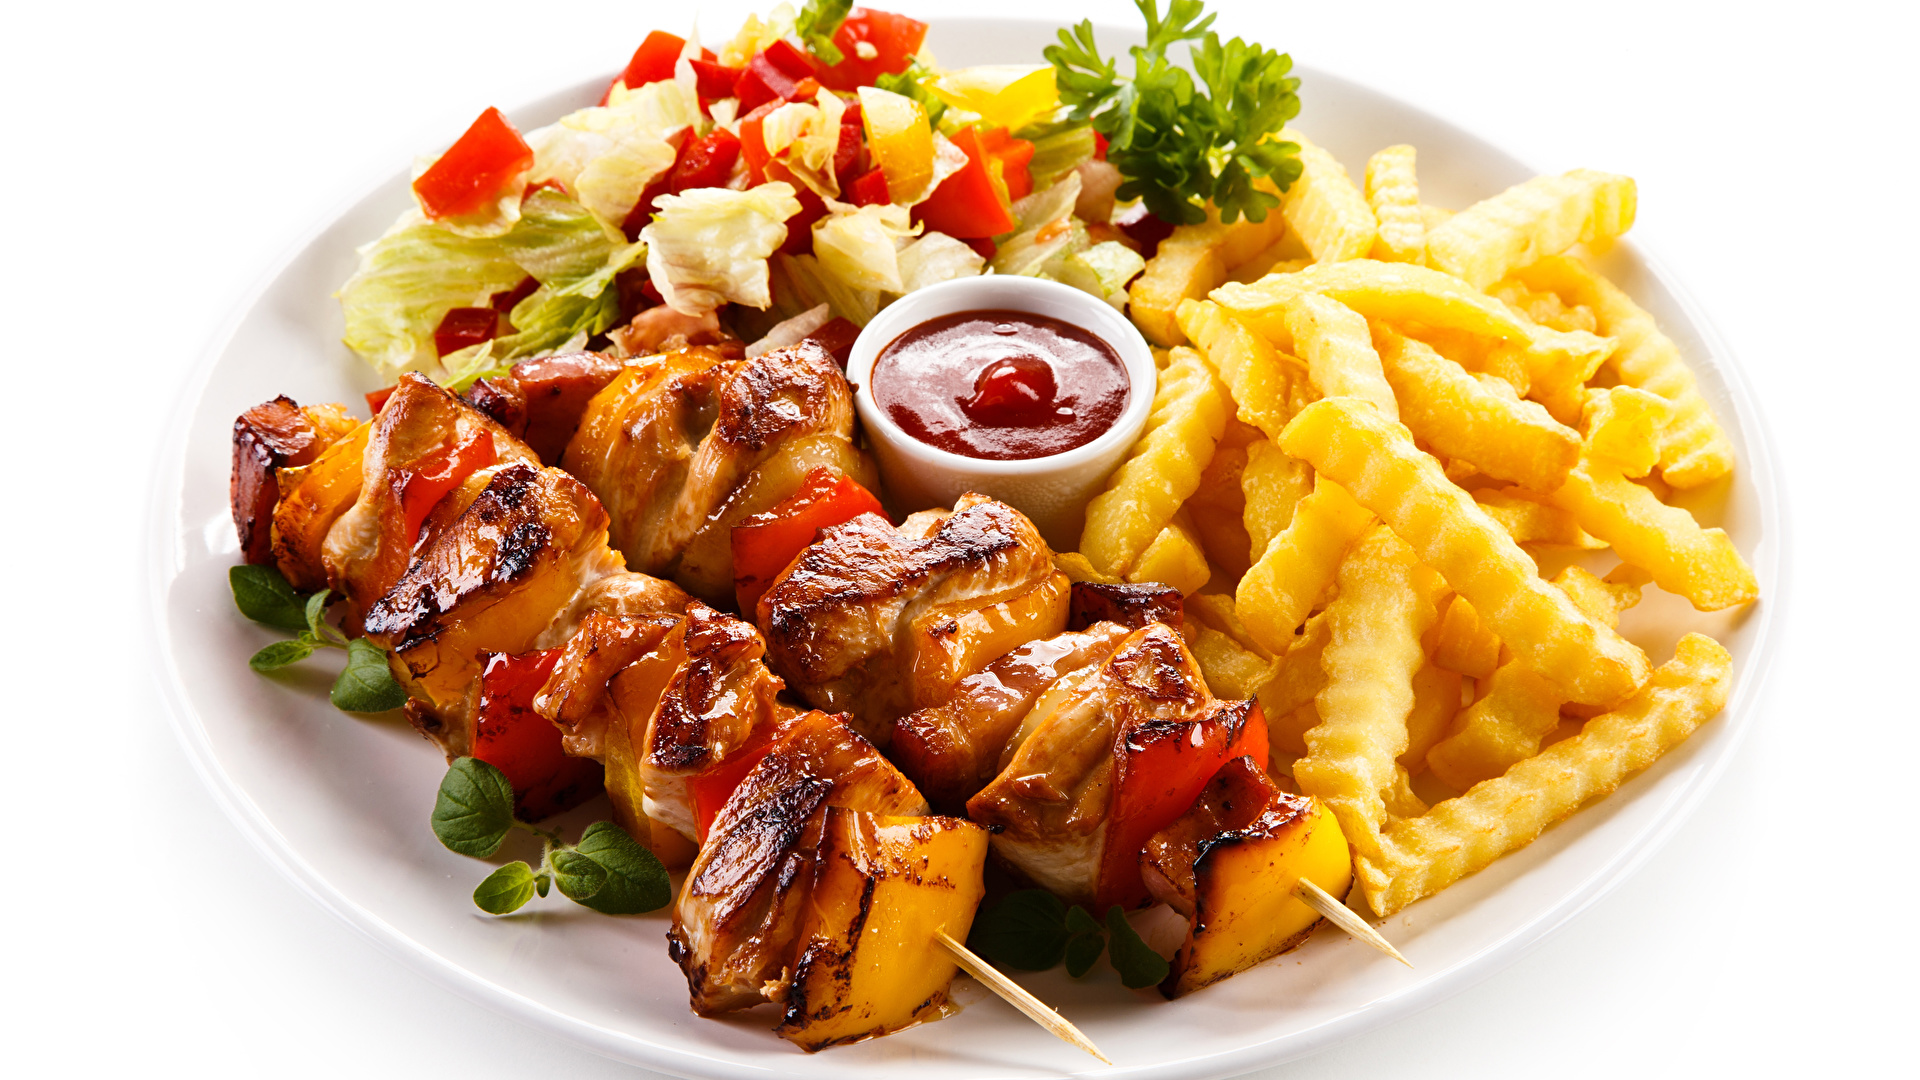 Images Shashlik French fries Ketchup Food Plate Meat 1920x1080 1920x1080